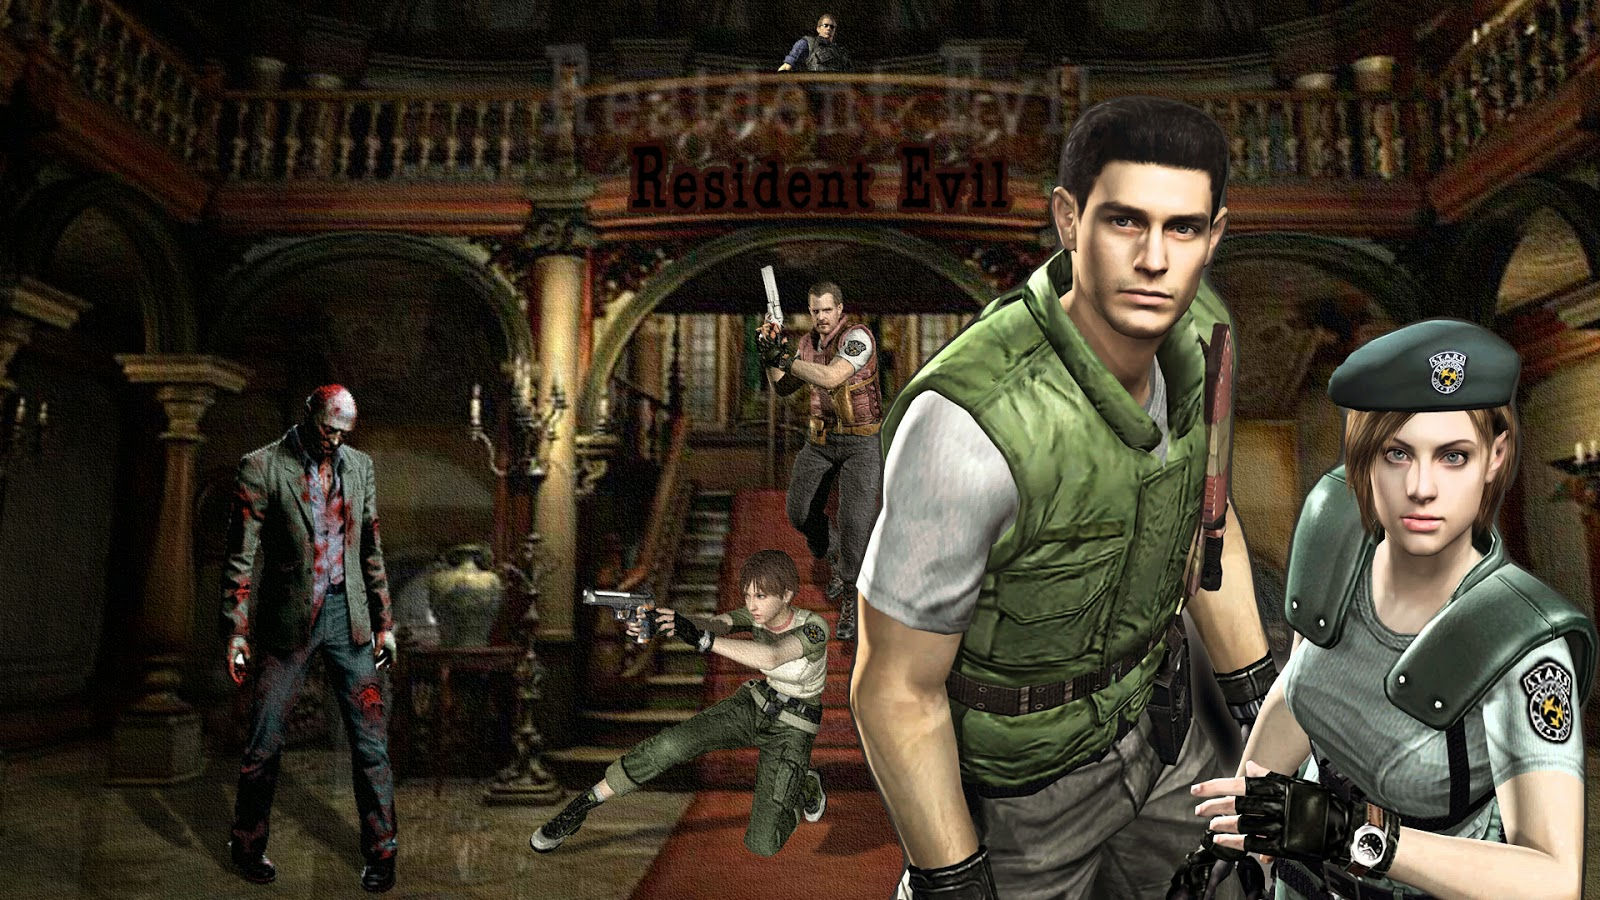 Resident Evil 1 pc version completa, download free Resident Evil 1